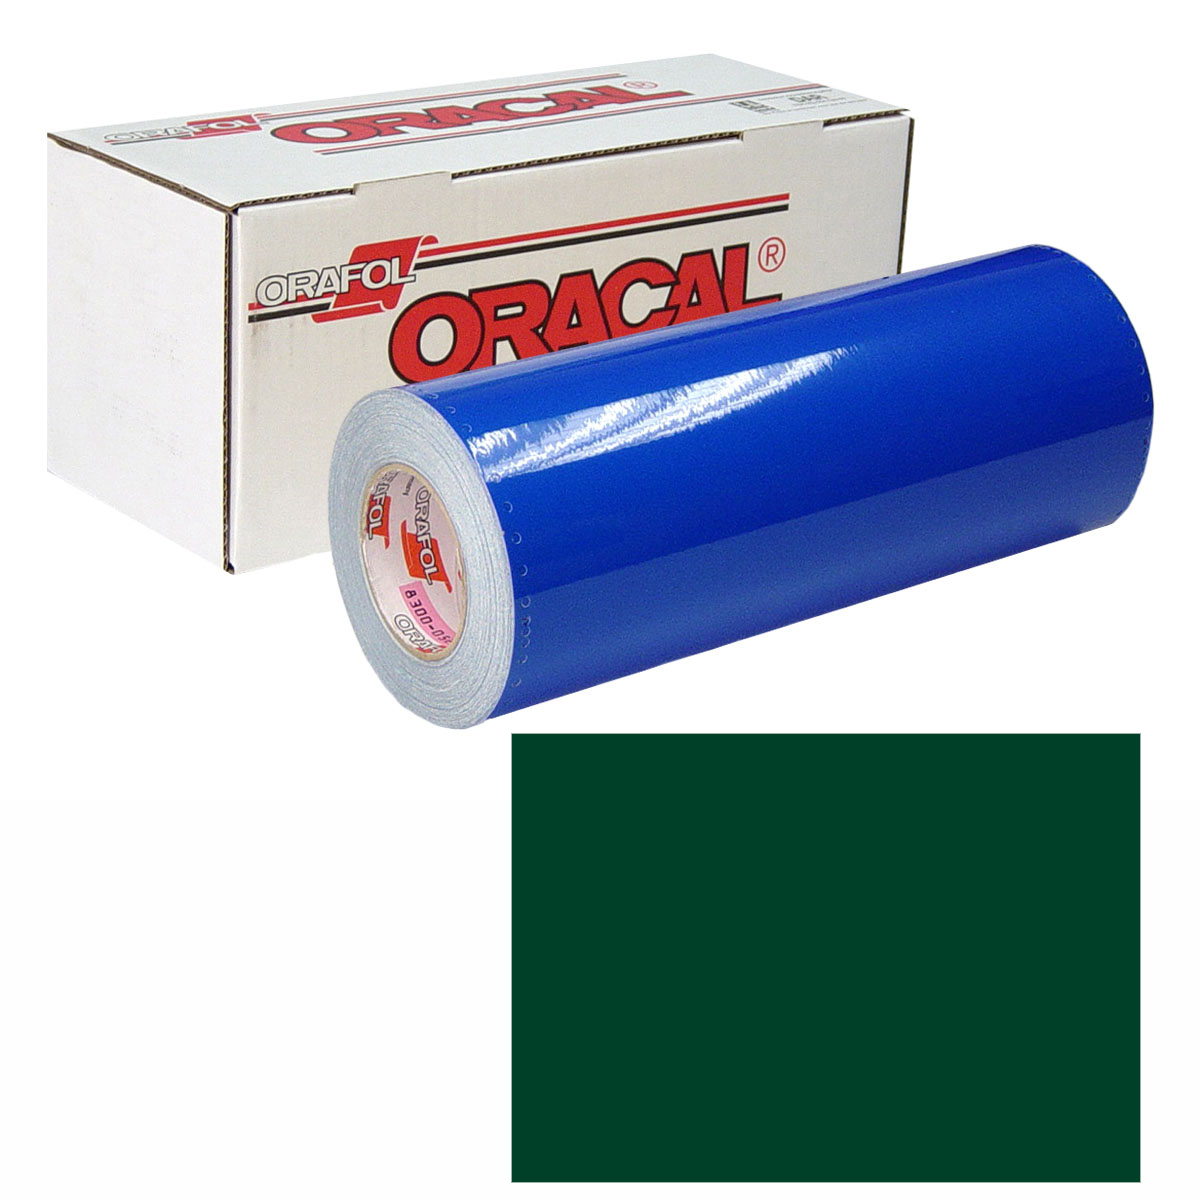 ORACAL 631 Unp 30In X 50Yd 060 Dark Green